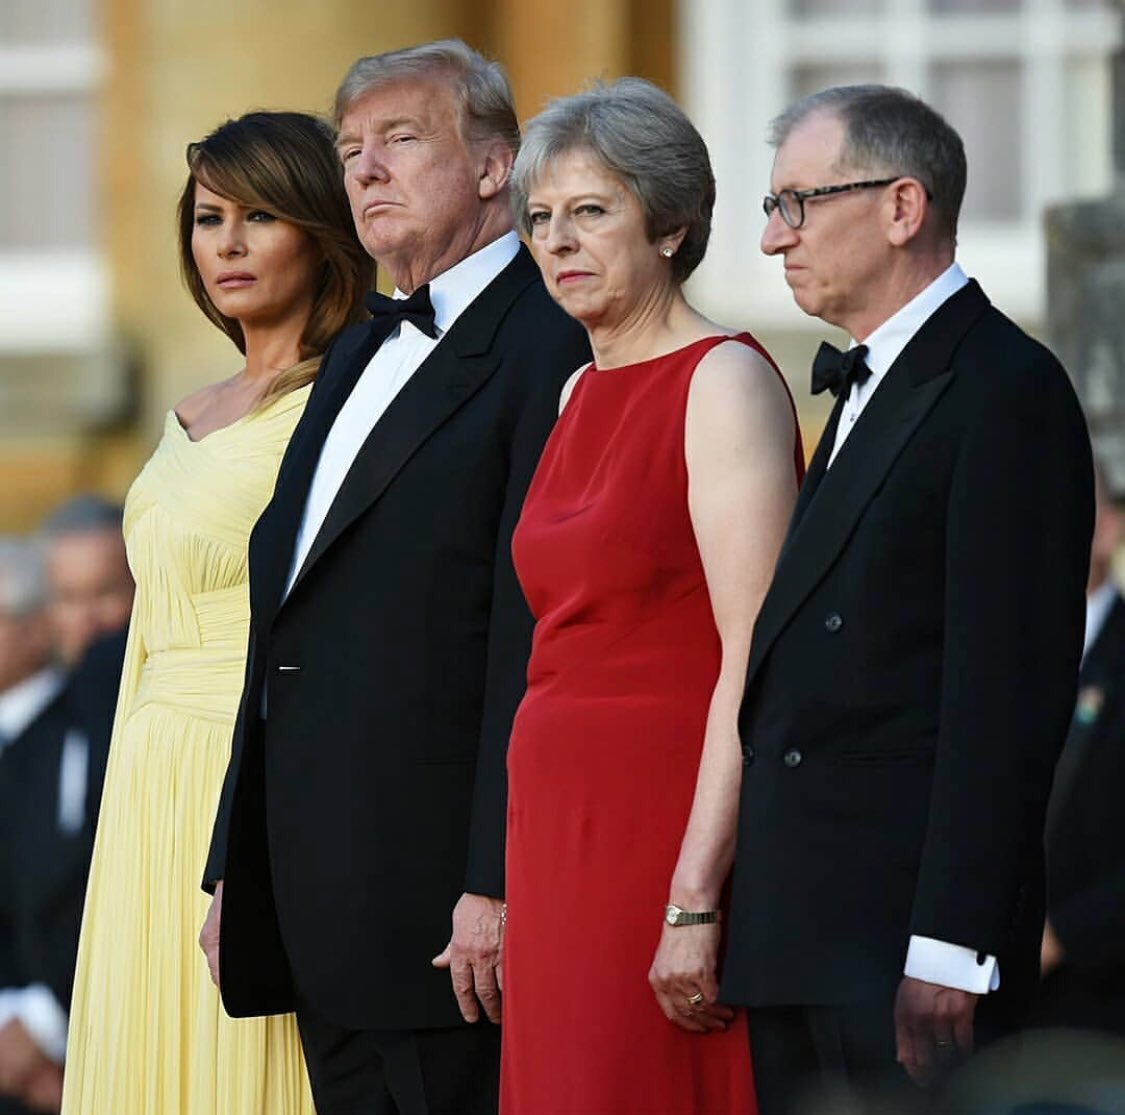 ABBA just aren't what they used to be...